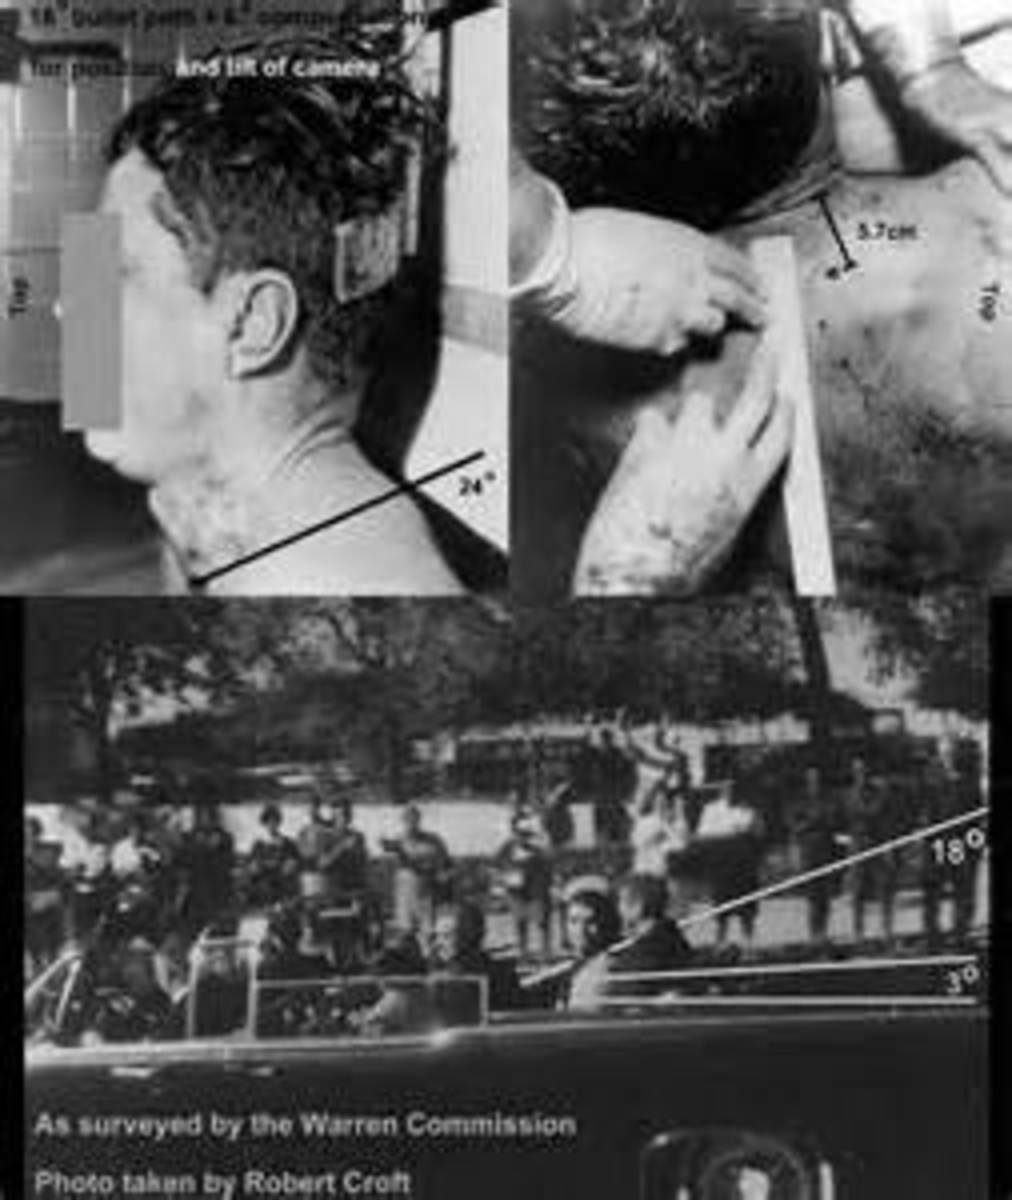 Photos From The Dead Body Of President Kennedy.